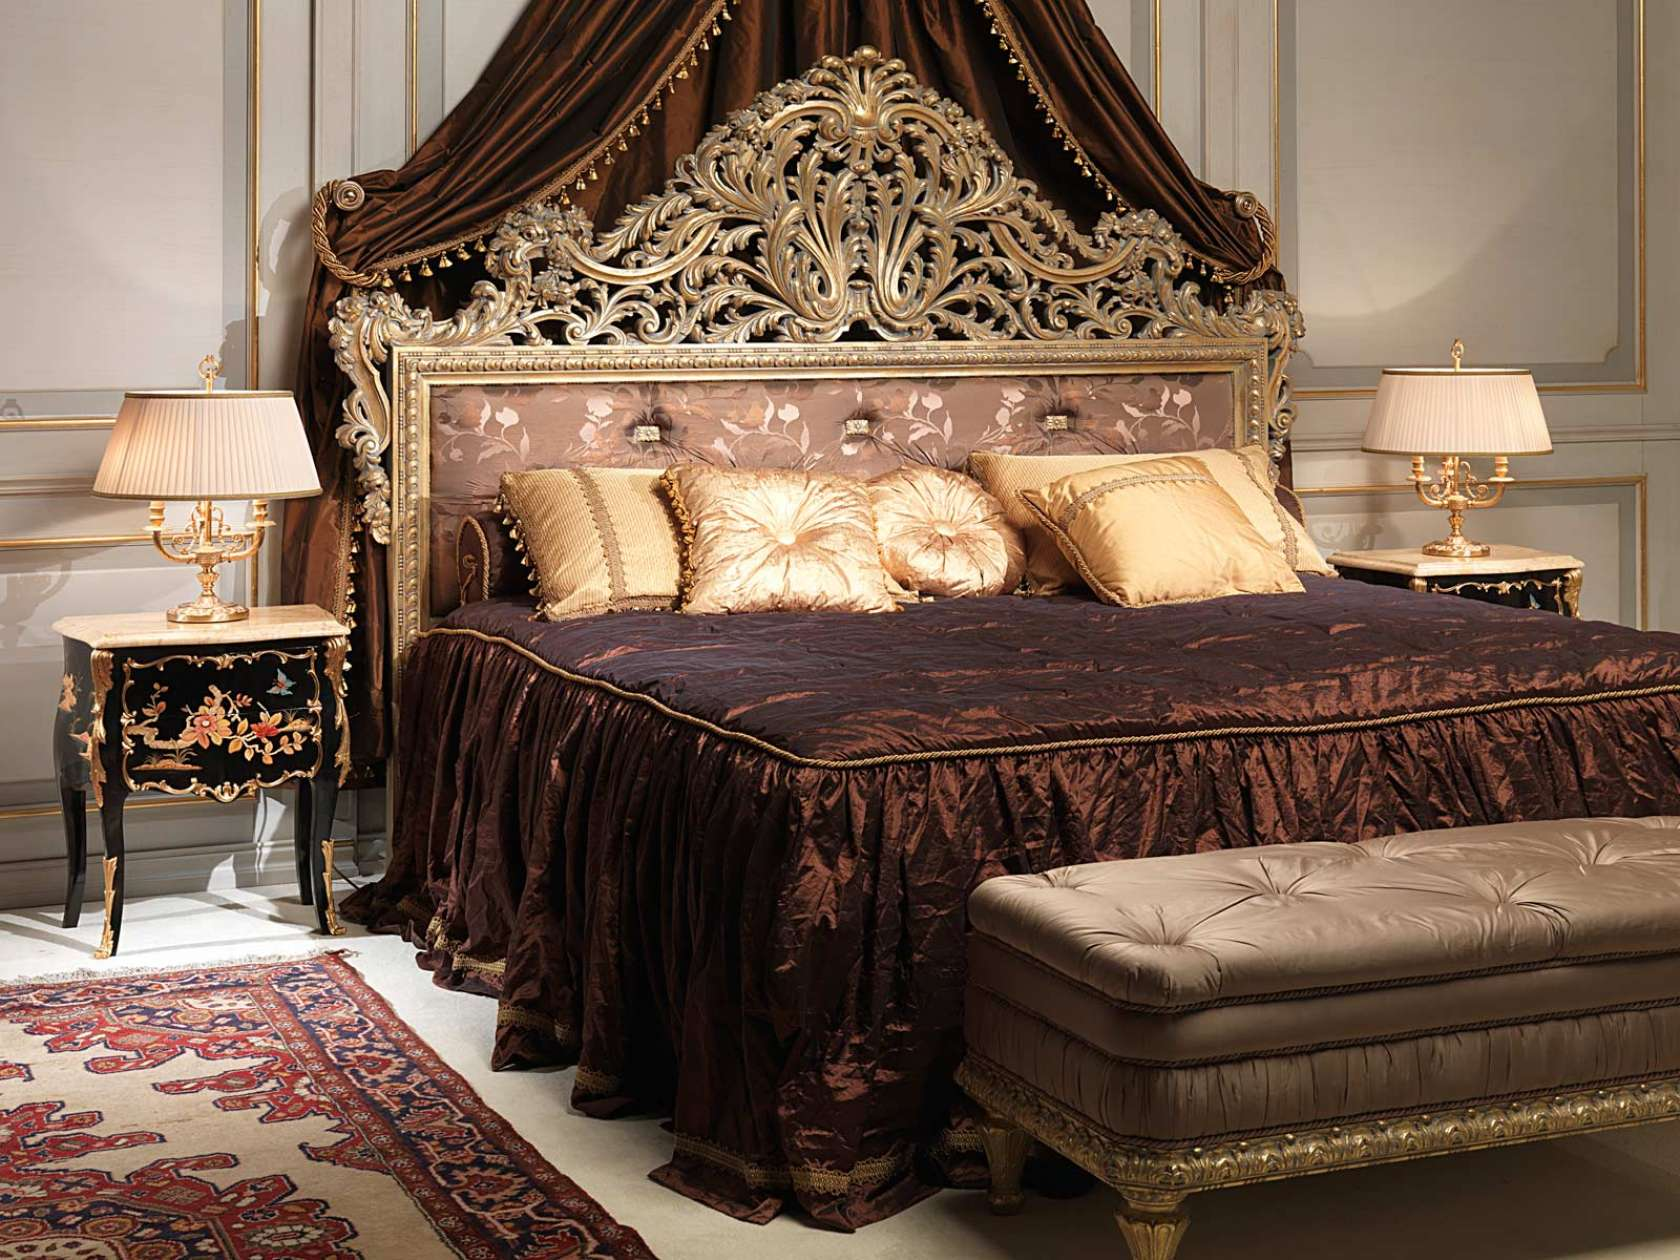 Classic Emperador Gold Bedroom Carved Bed Inlaid Bedside Tables Capitonne Bench Vimercati Classic Furniture